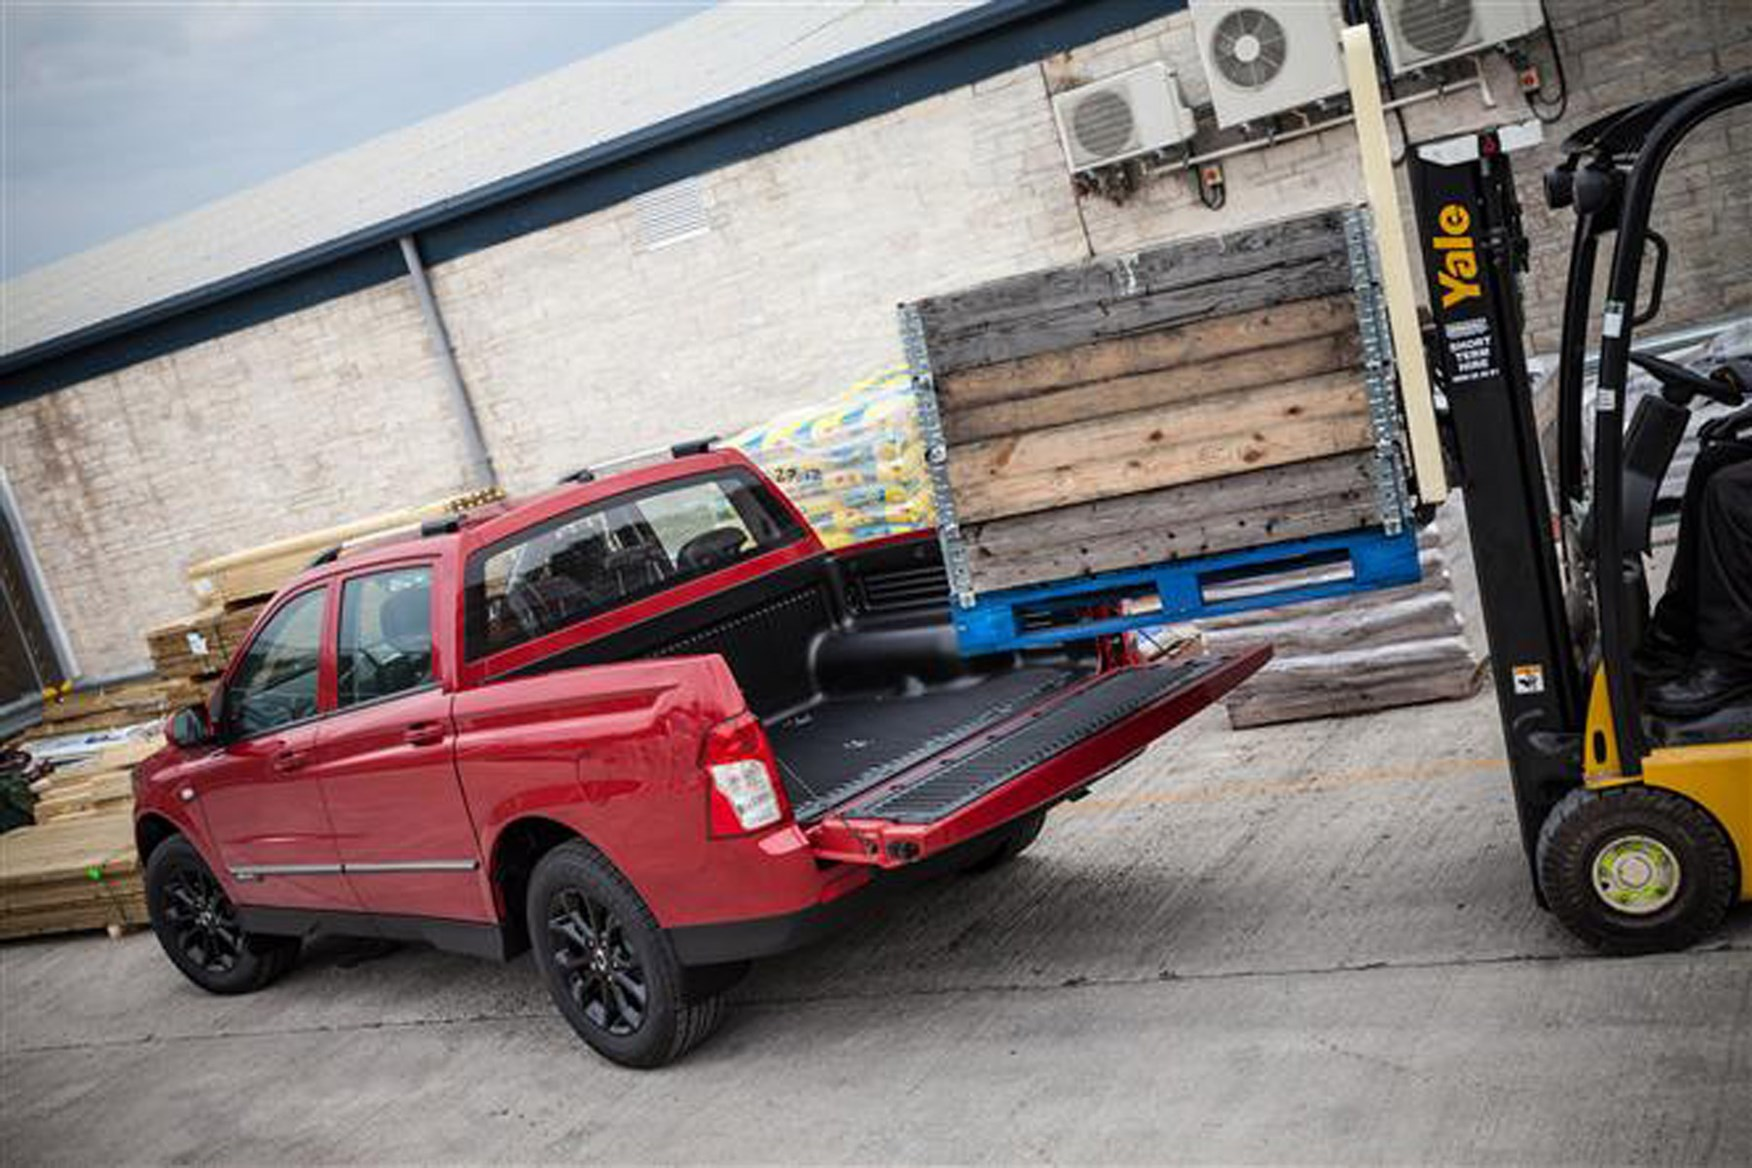 SsangYong Musso full review on Parkers Vans - payload capability